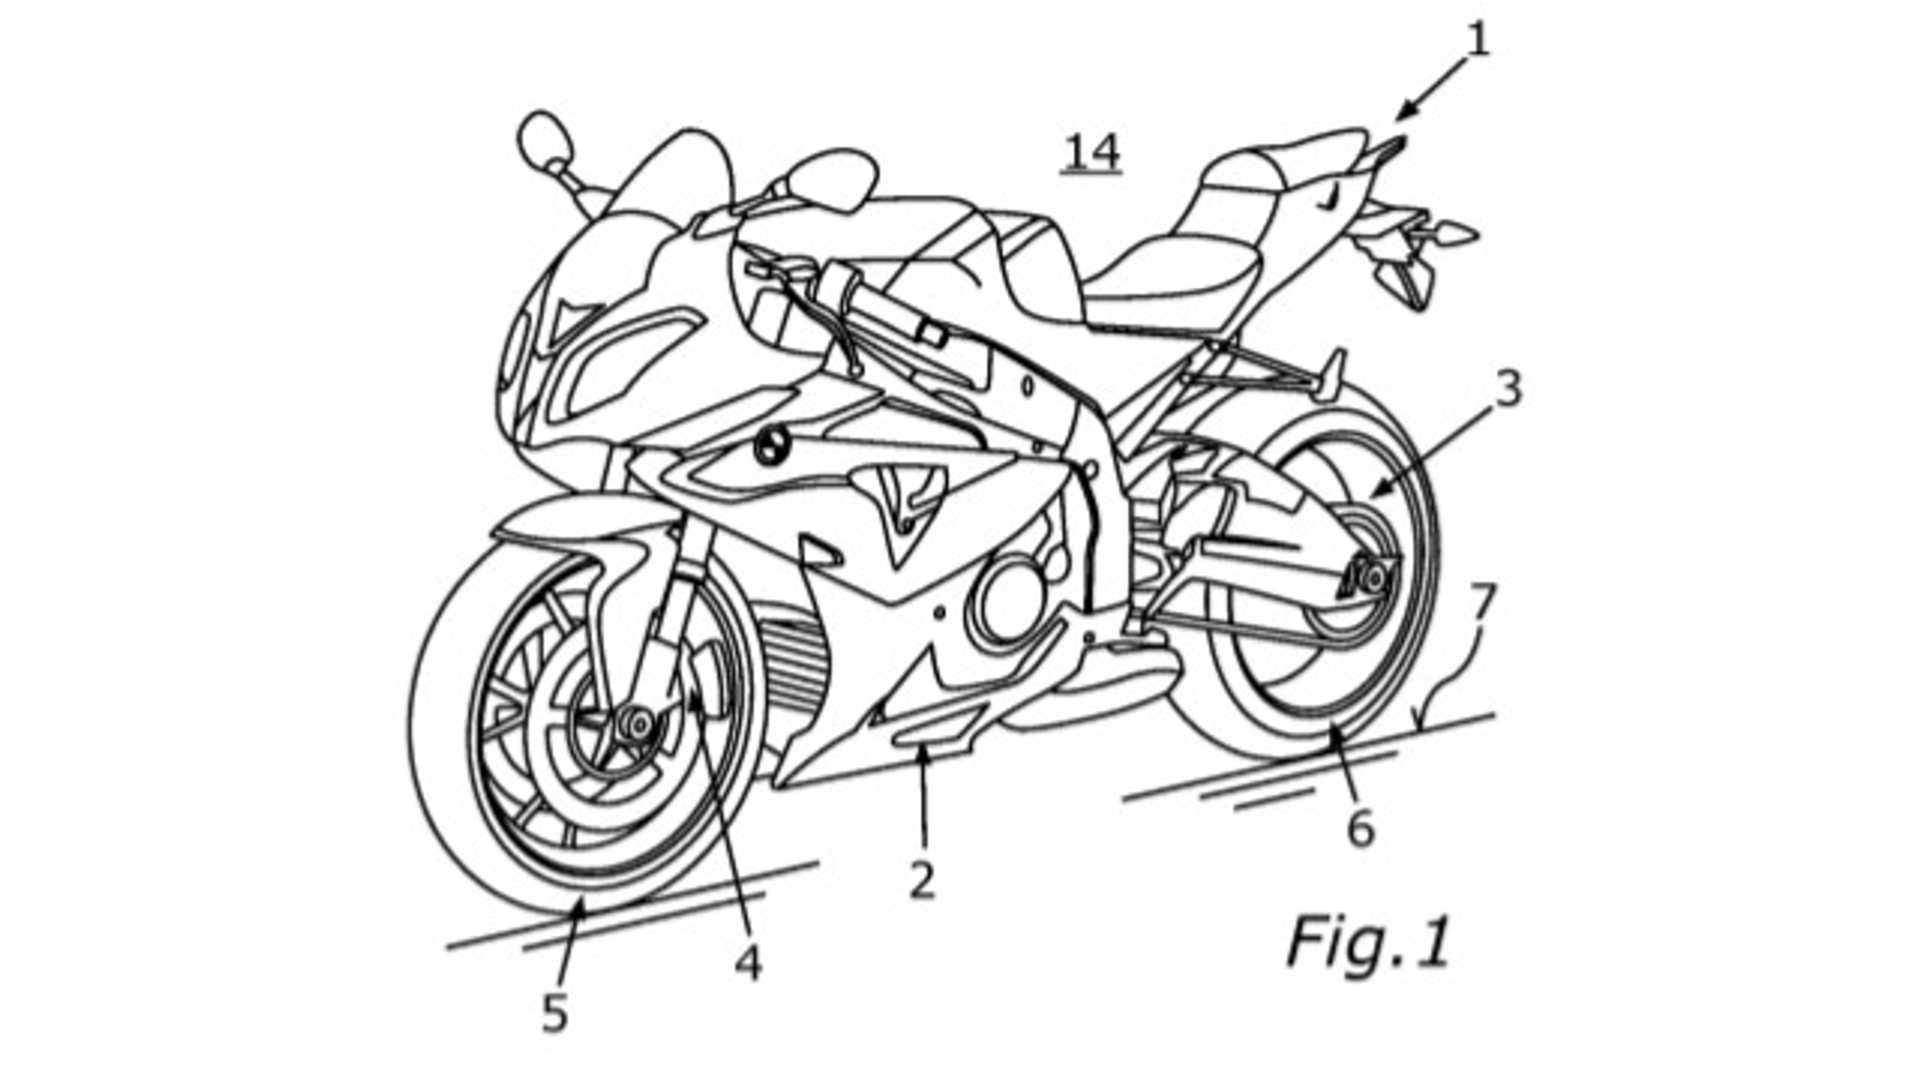 Will BMW Ever Make This Electric Supercharger For The S1000RR?